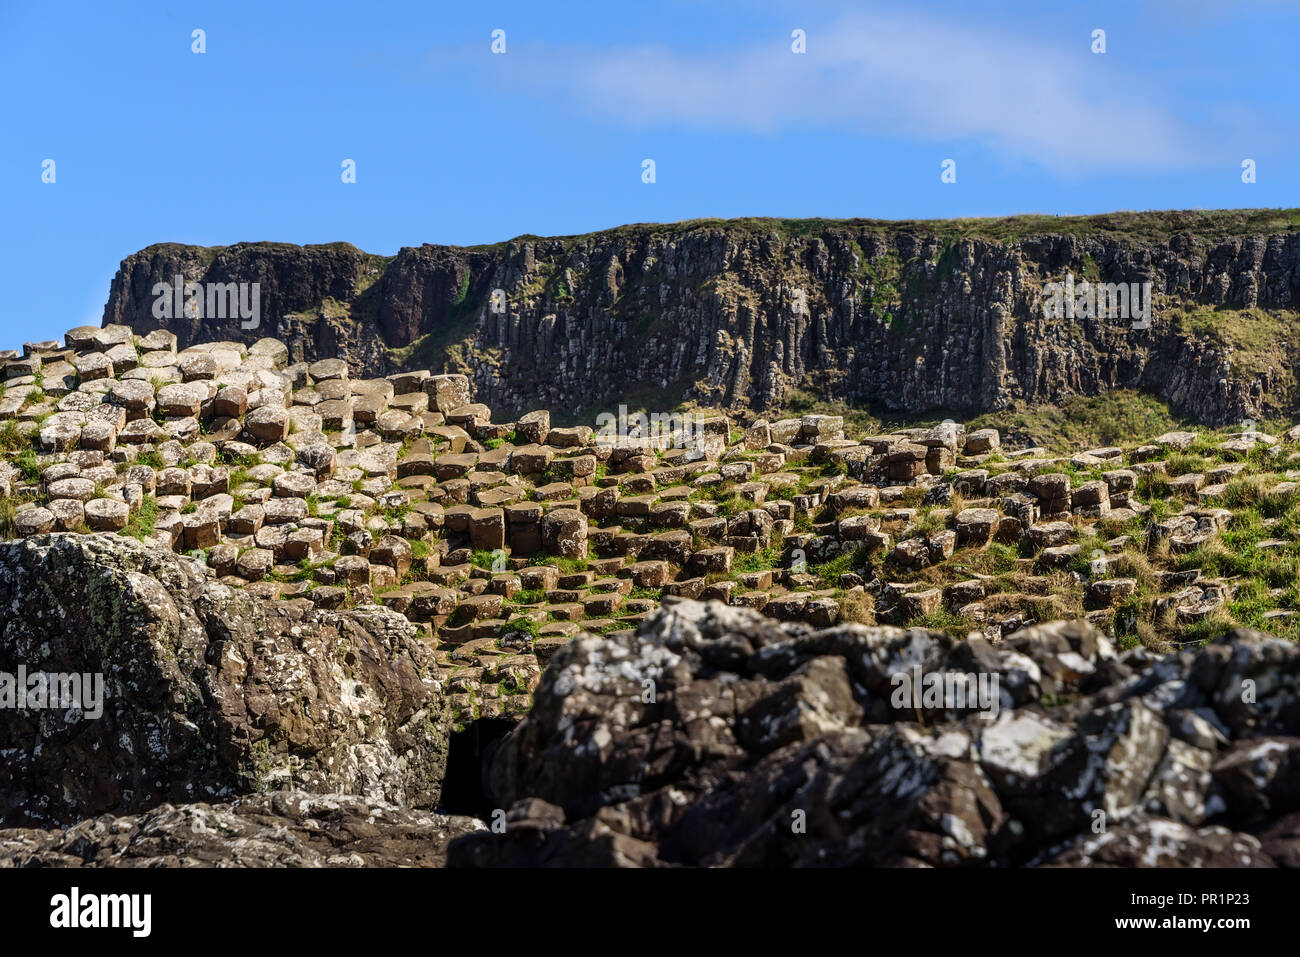 Giants Causeway, in Northern Ireland, a coastline filled with natural interlocking basalt columns, the remnants from an ancient volcanic fissure erupt - Stock Image